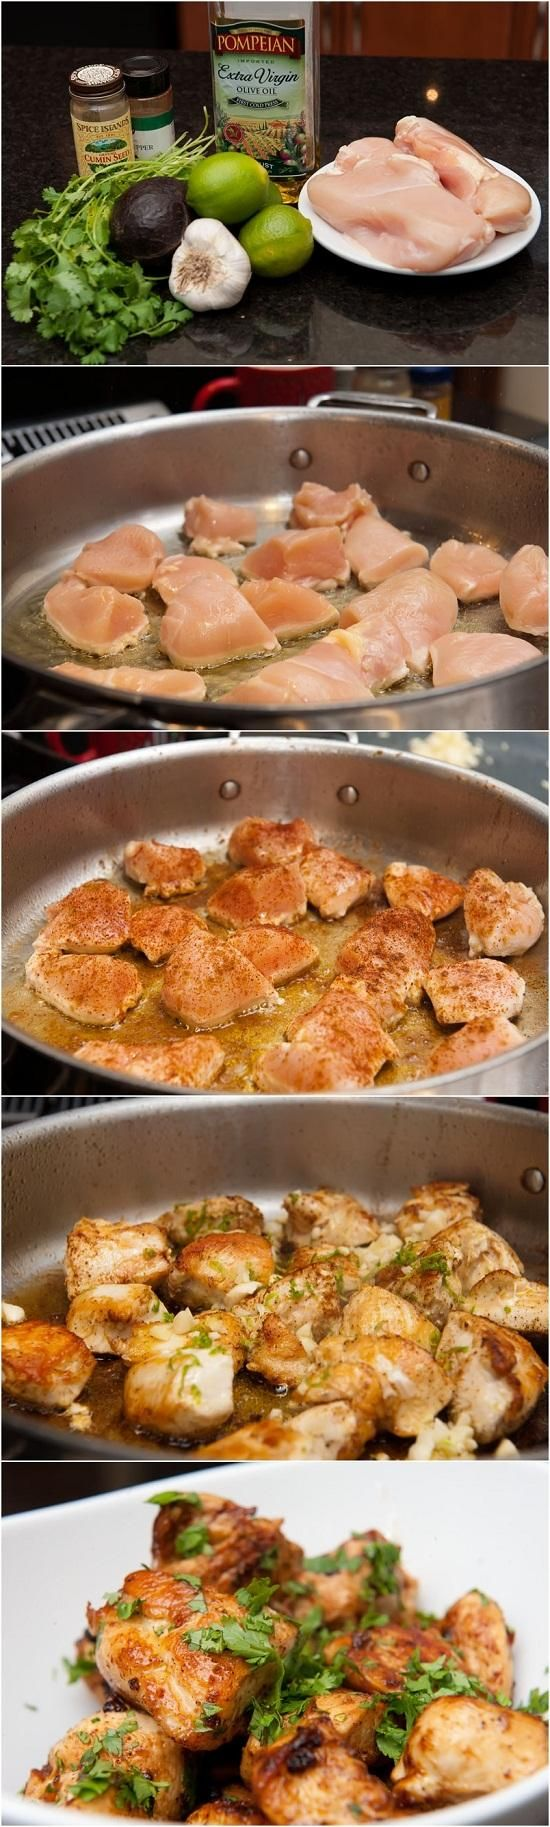 Quick Lime Cilantro Chicken. Loved This. Only Used One Large Lime & Cooked With Cilantro & Added More At The End.